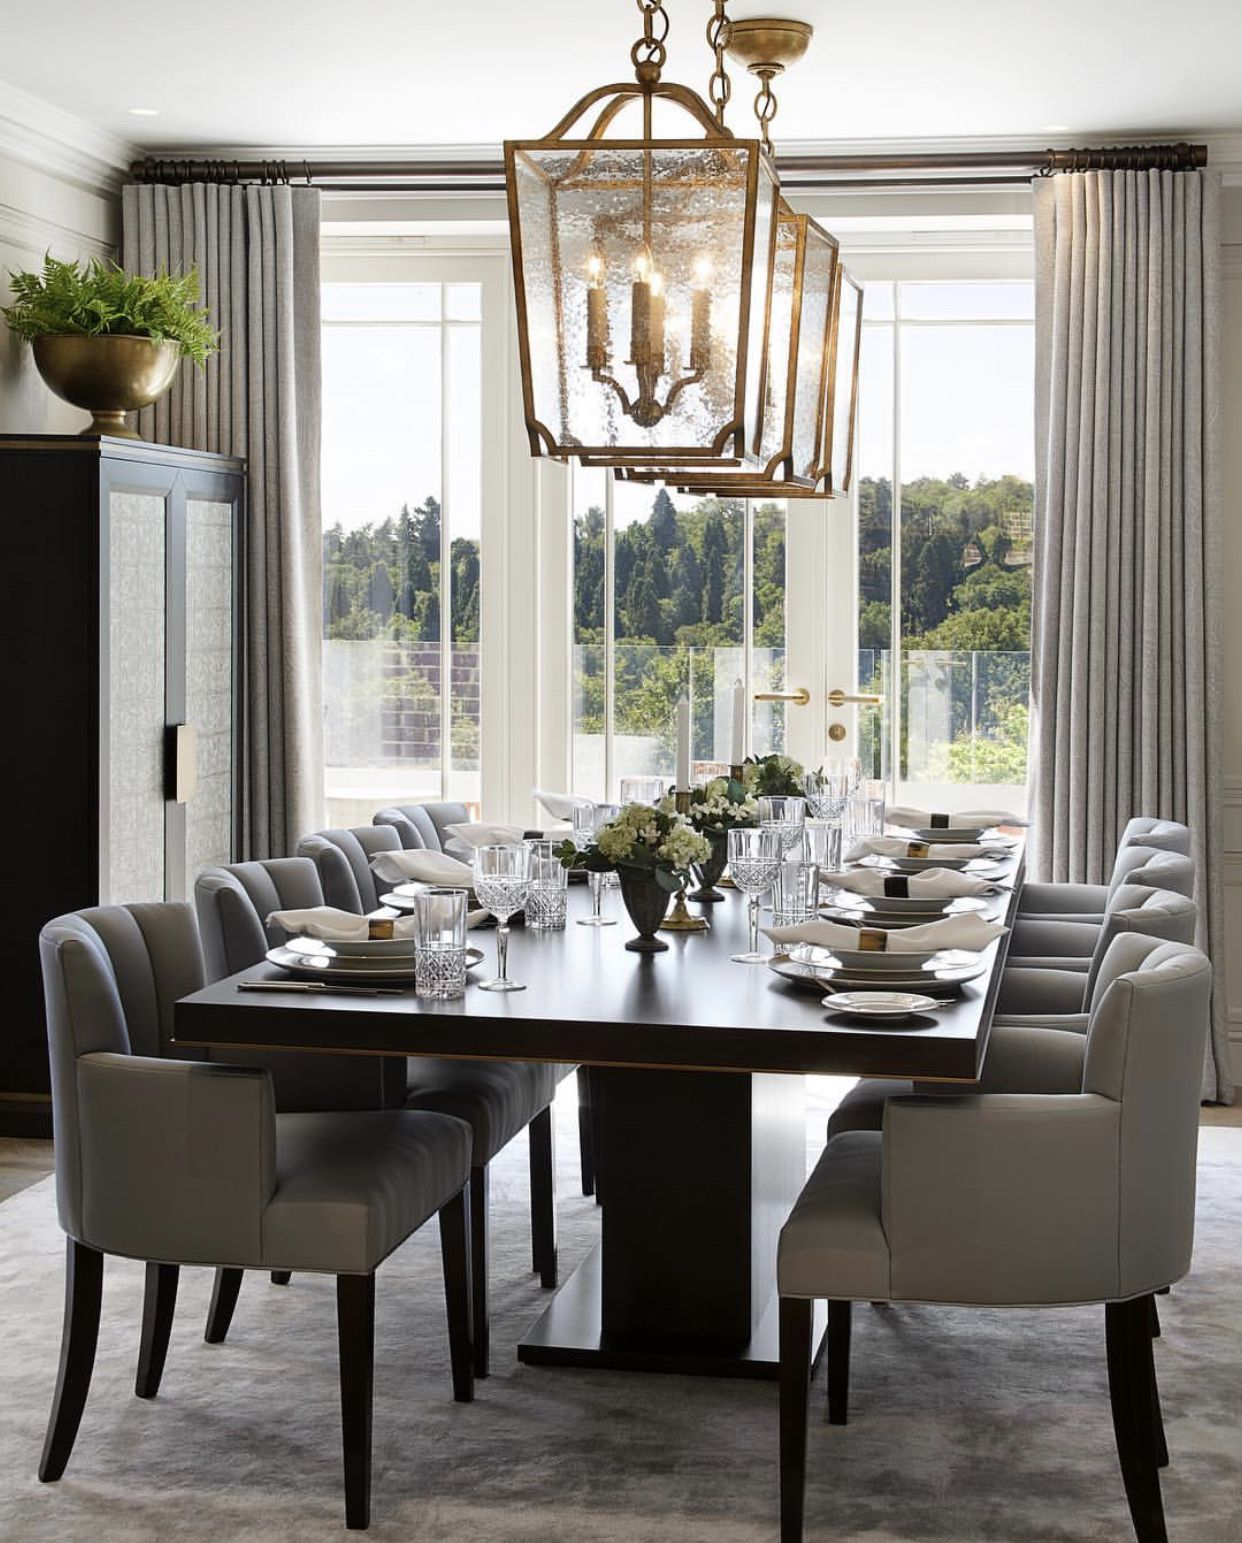 19 Ideas For Creating A Modern Dining Room: 4 Principles For Creating The Perfect Dining Room